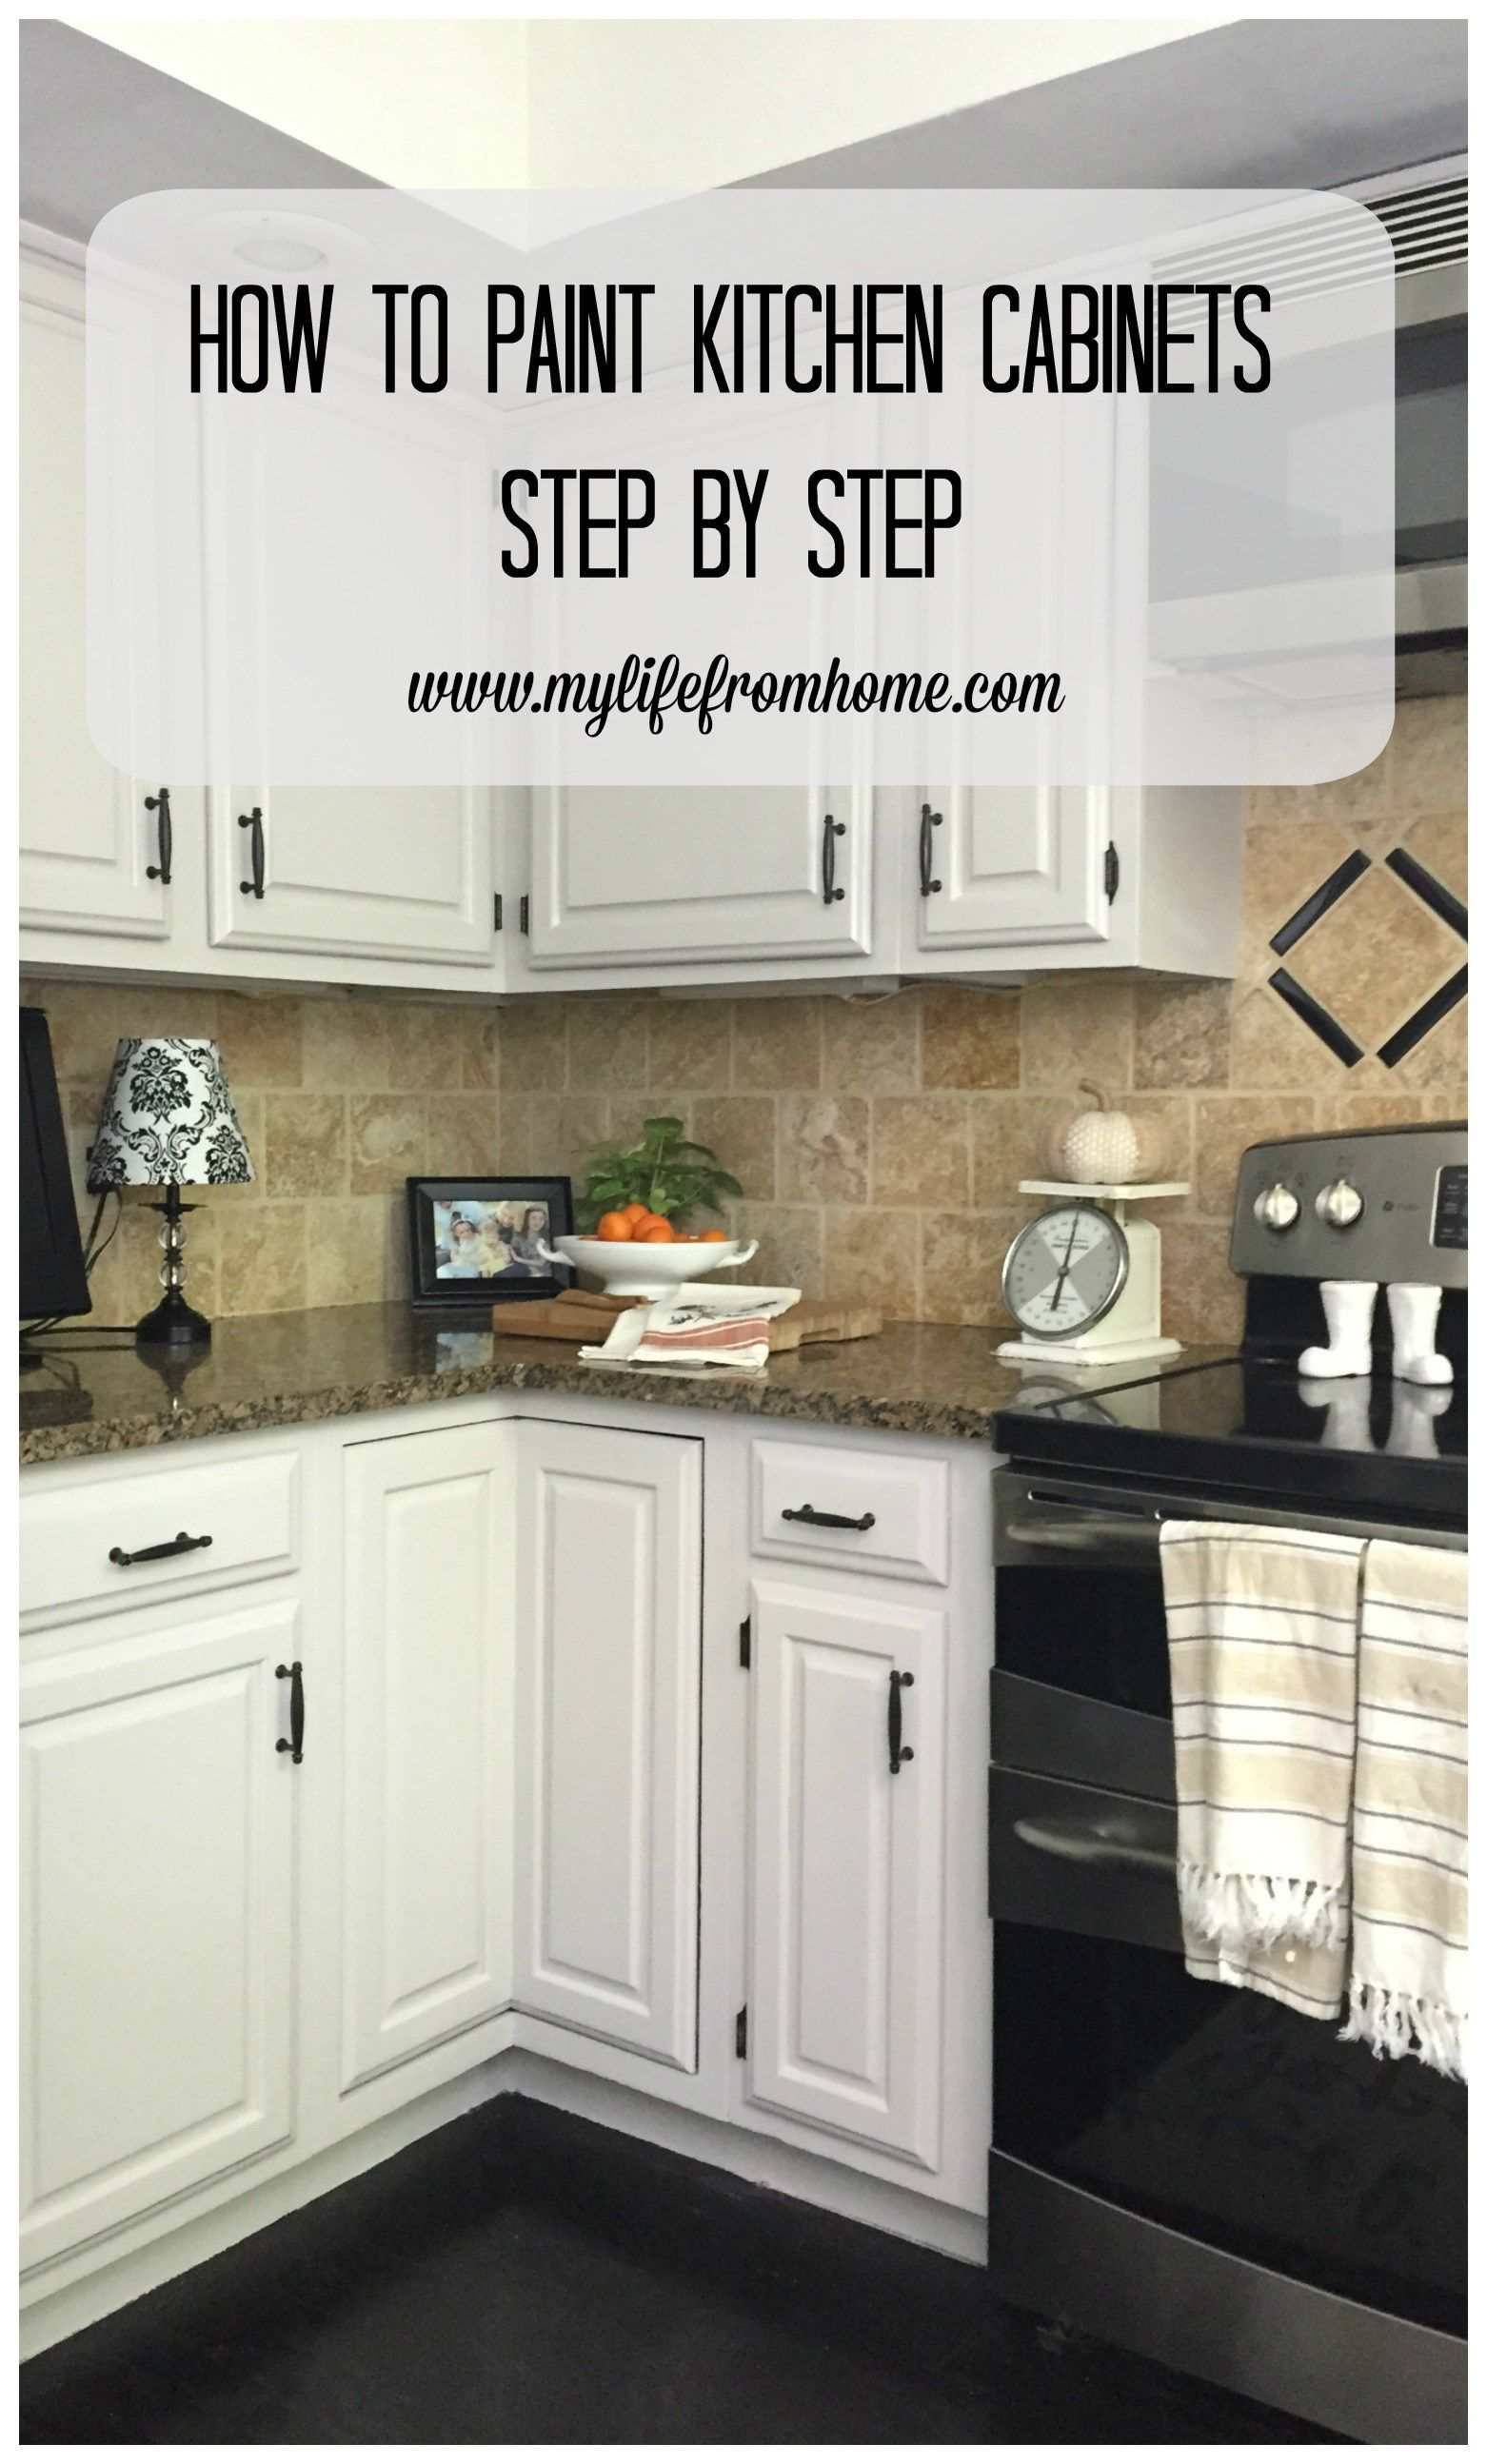 Diy How I Painted My Kitchen Cabinets Diy Kitchen Cabinets Painting Painting Kitchen Cabinets Repainting Kitchen Cabinets